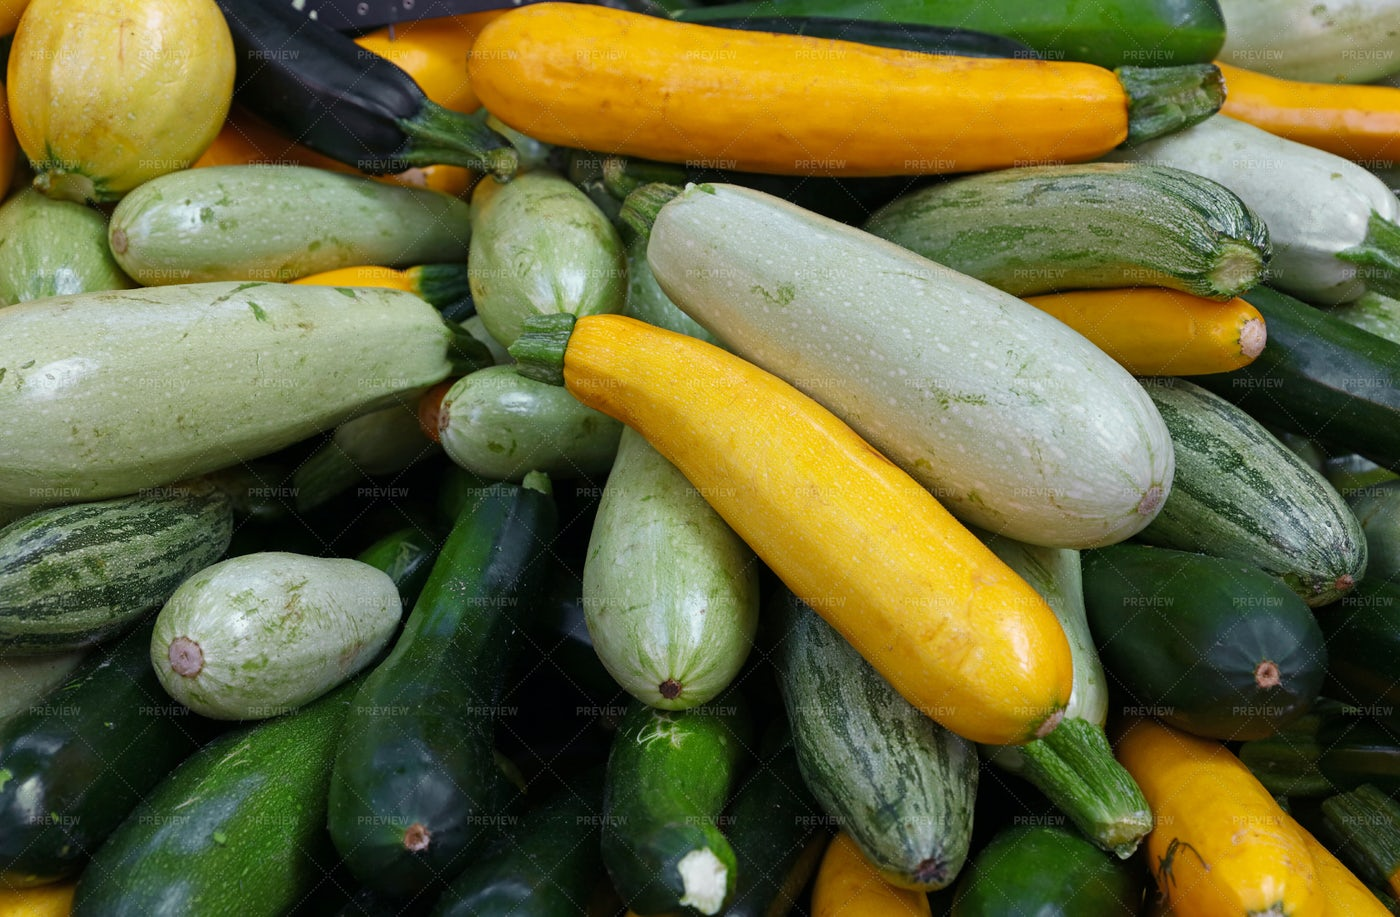 Zucchini At A Market Stall: Stock Photos